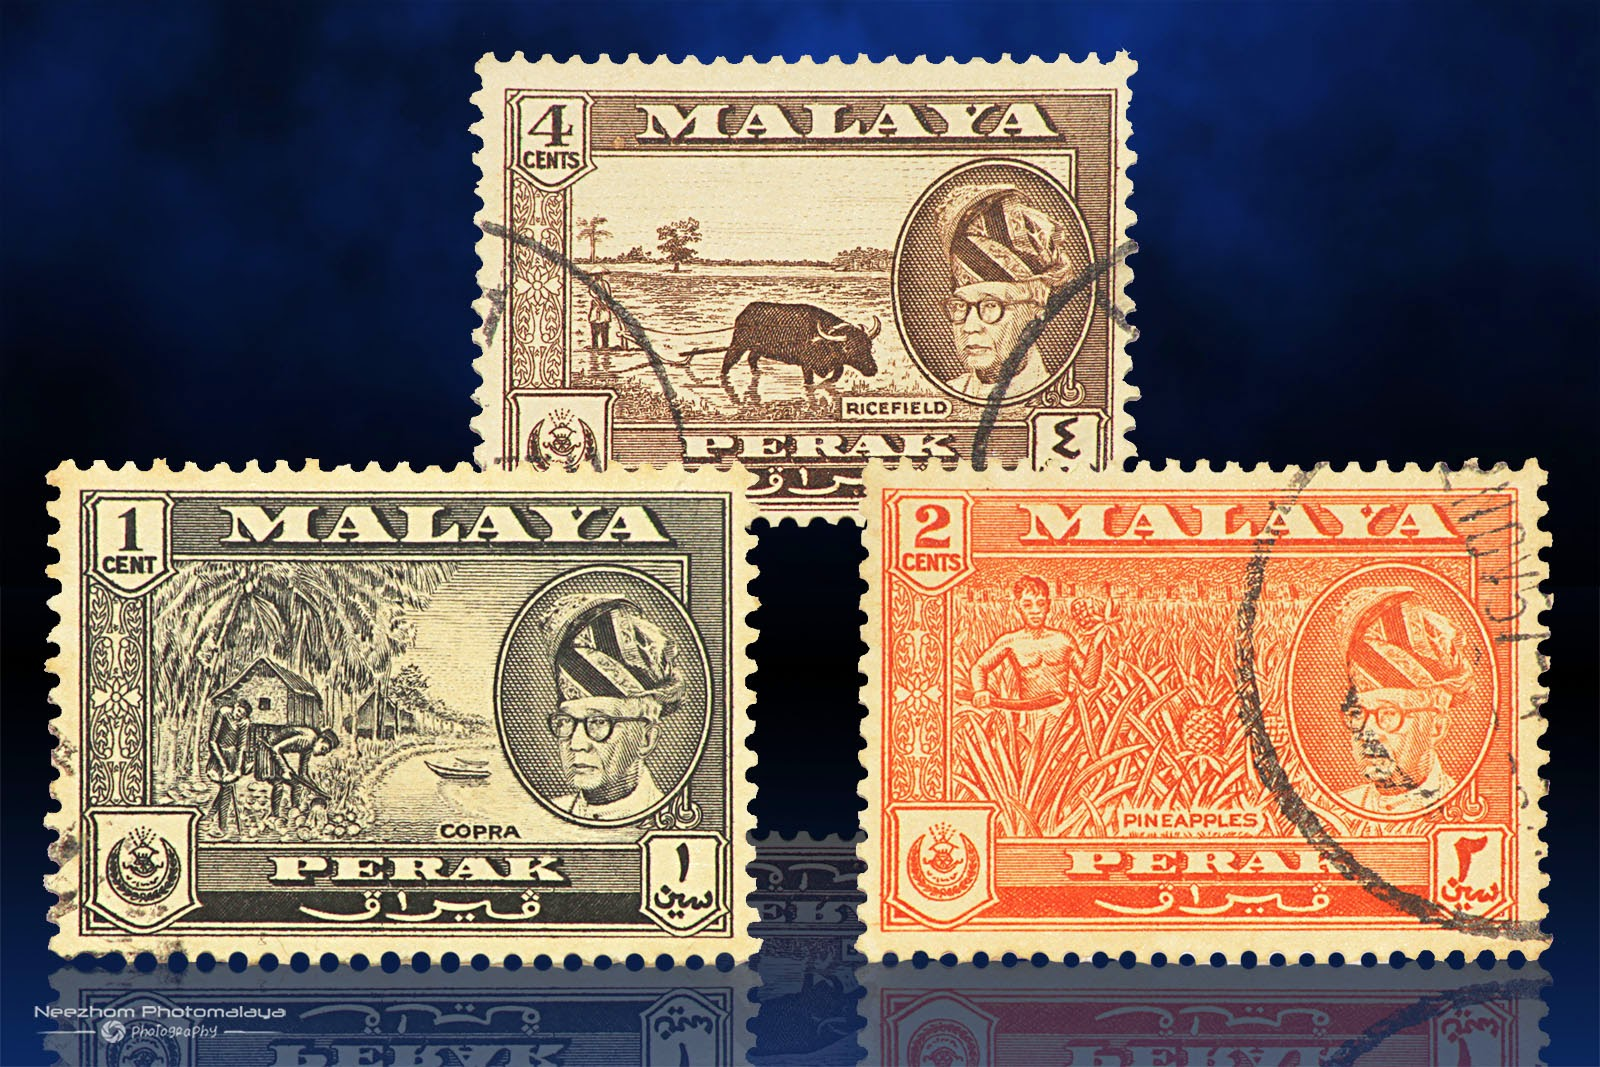 Malaya  1957 - 1961 stamps 1 Cent, 2 Cents, 4 Cents